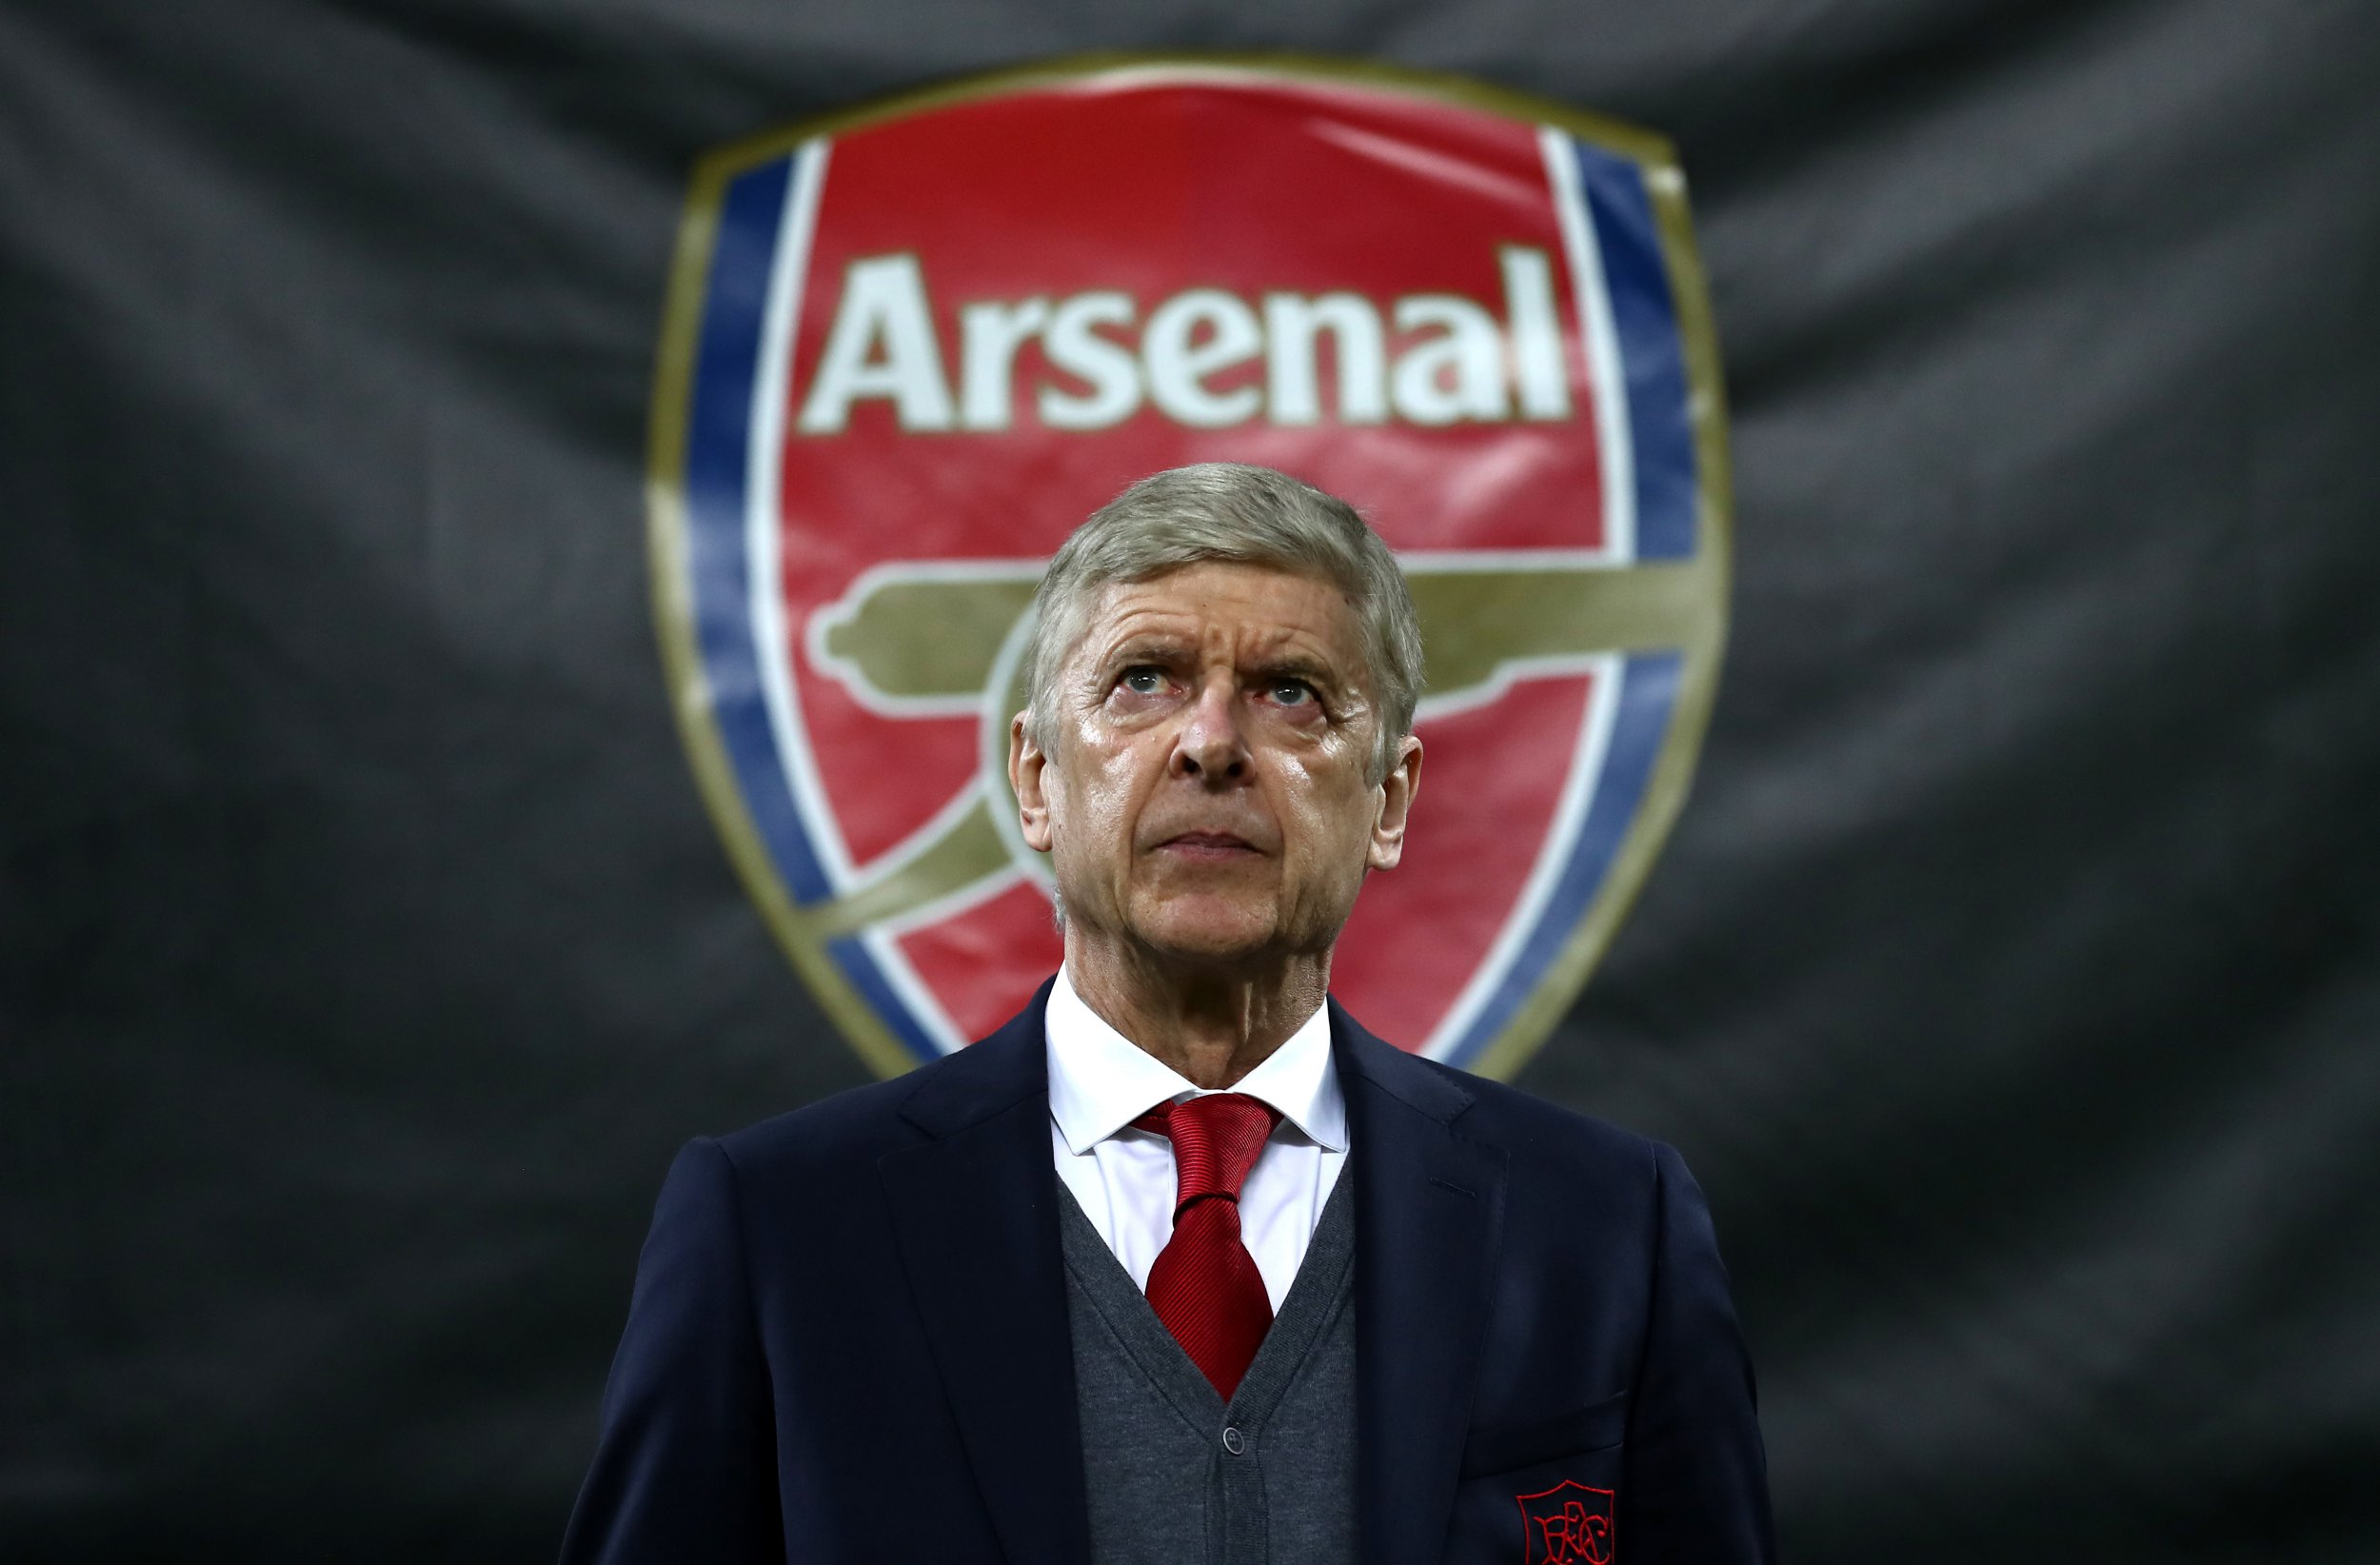 Arsenal confirm Arsene Wenger will leave the club